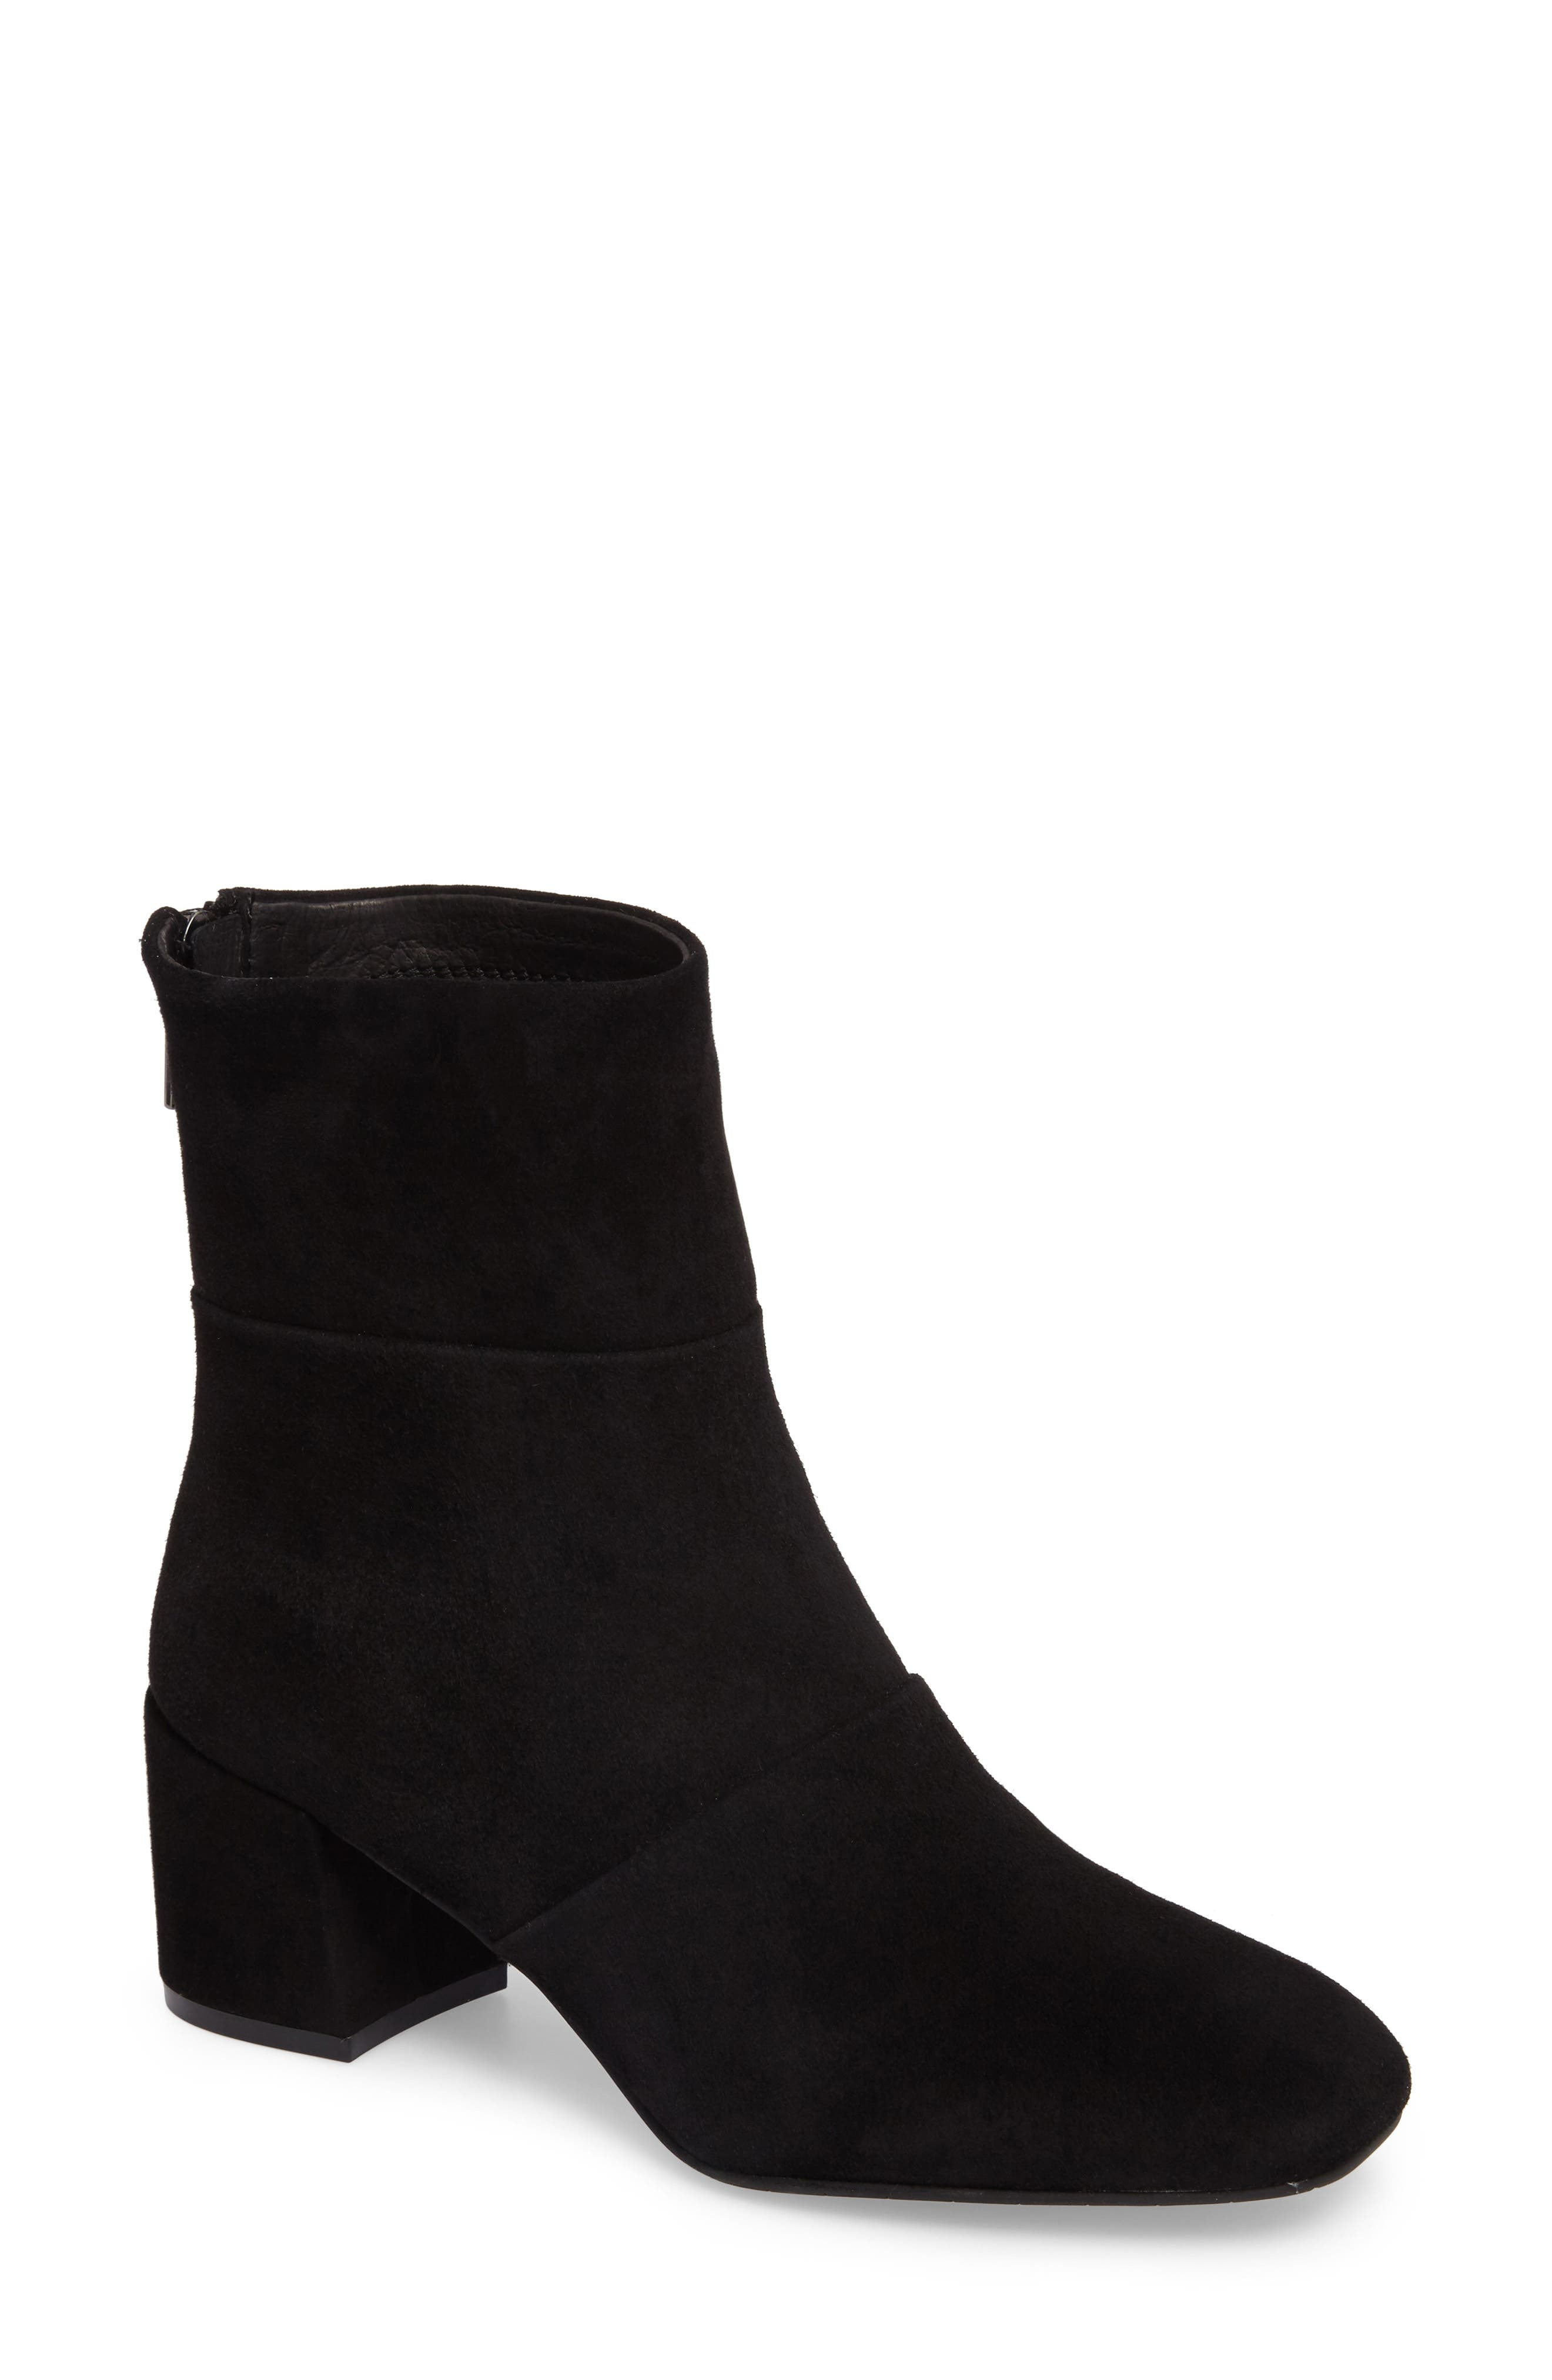 Main Image - Kenneth Cole New York Eryc Bootie (Women)